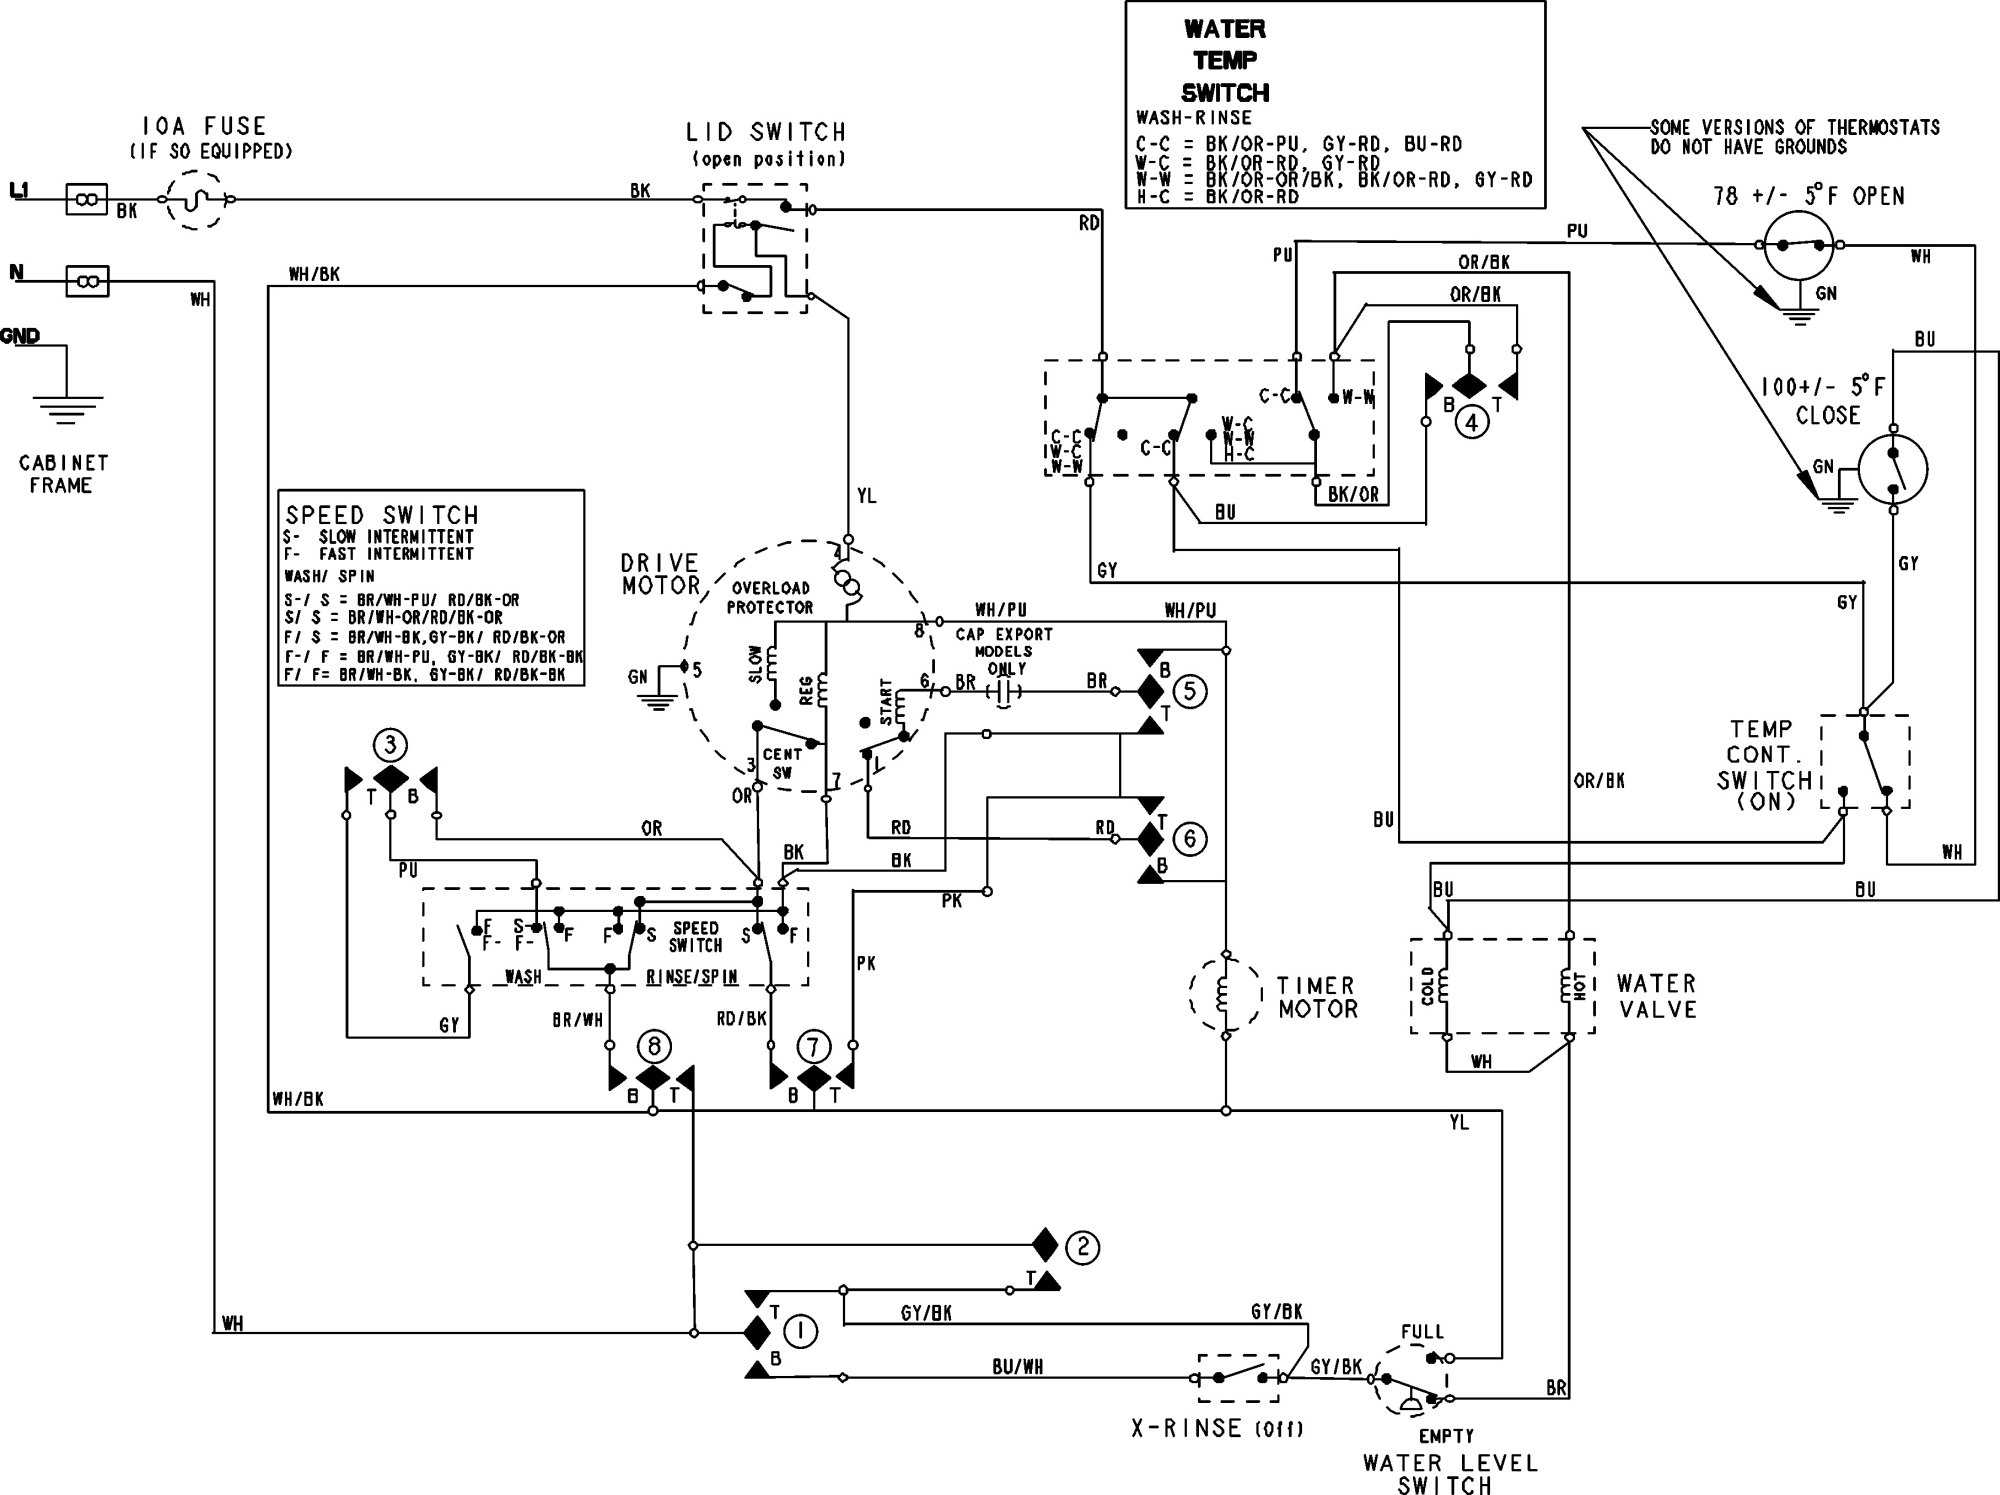 hight resolution of de303 wiring diagram blog wiring diagram click image for larger versionnamediagramjpgviews48787size401